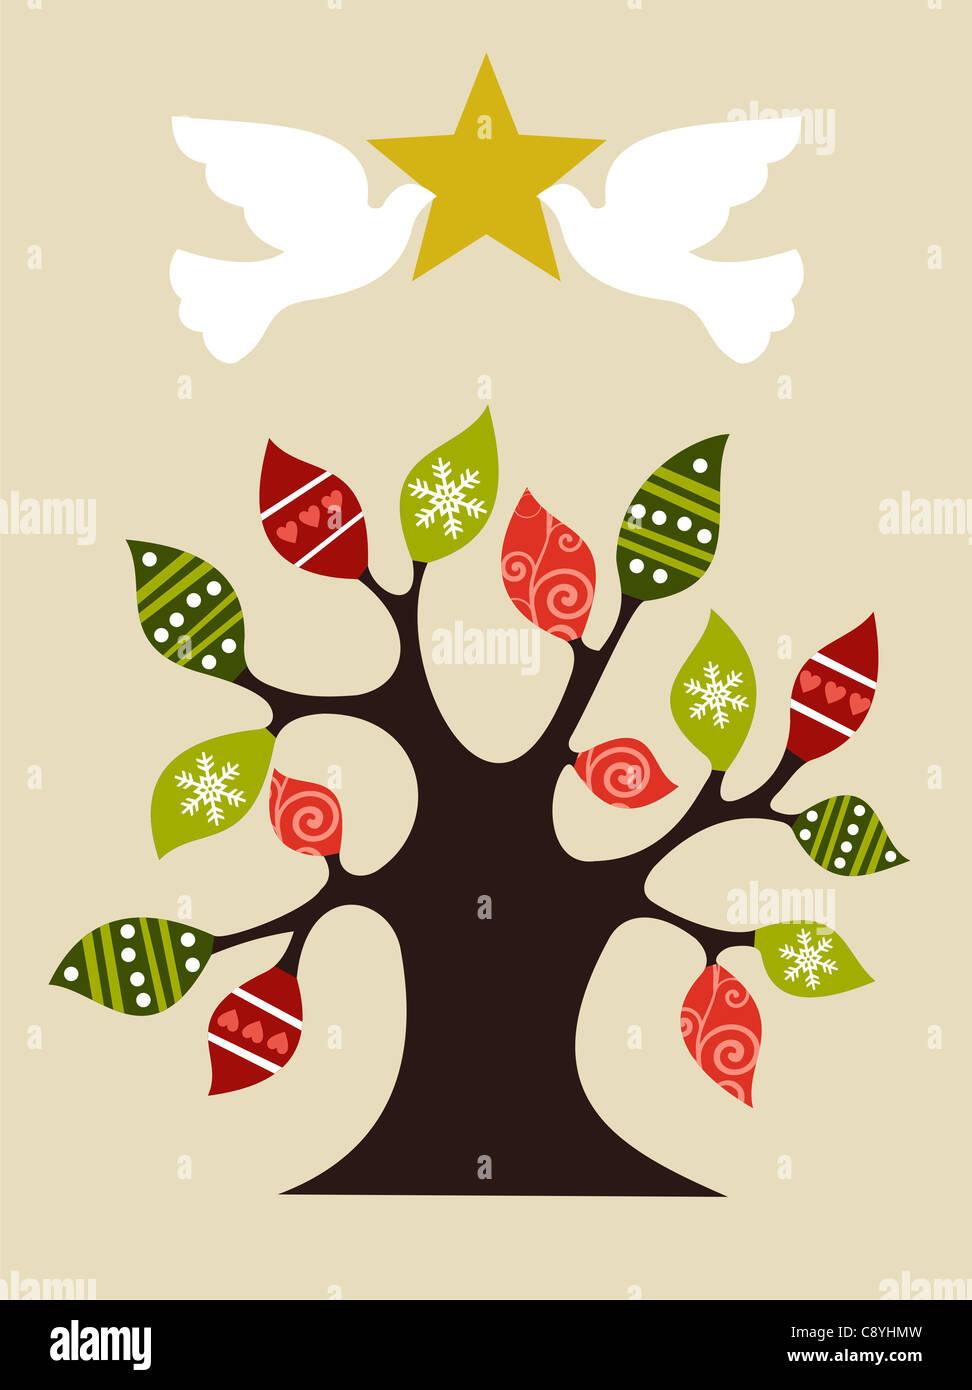 Christmas tree with pace doves holding and shiny golden star on top. Vector file available. - Stock Image